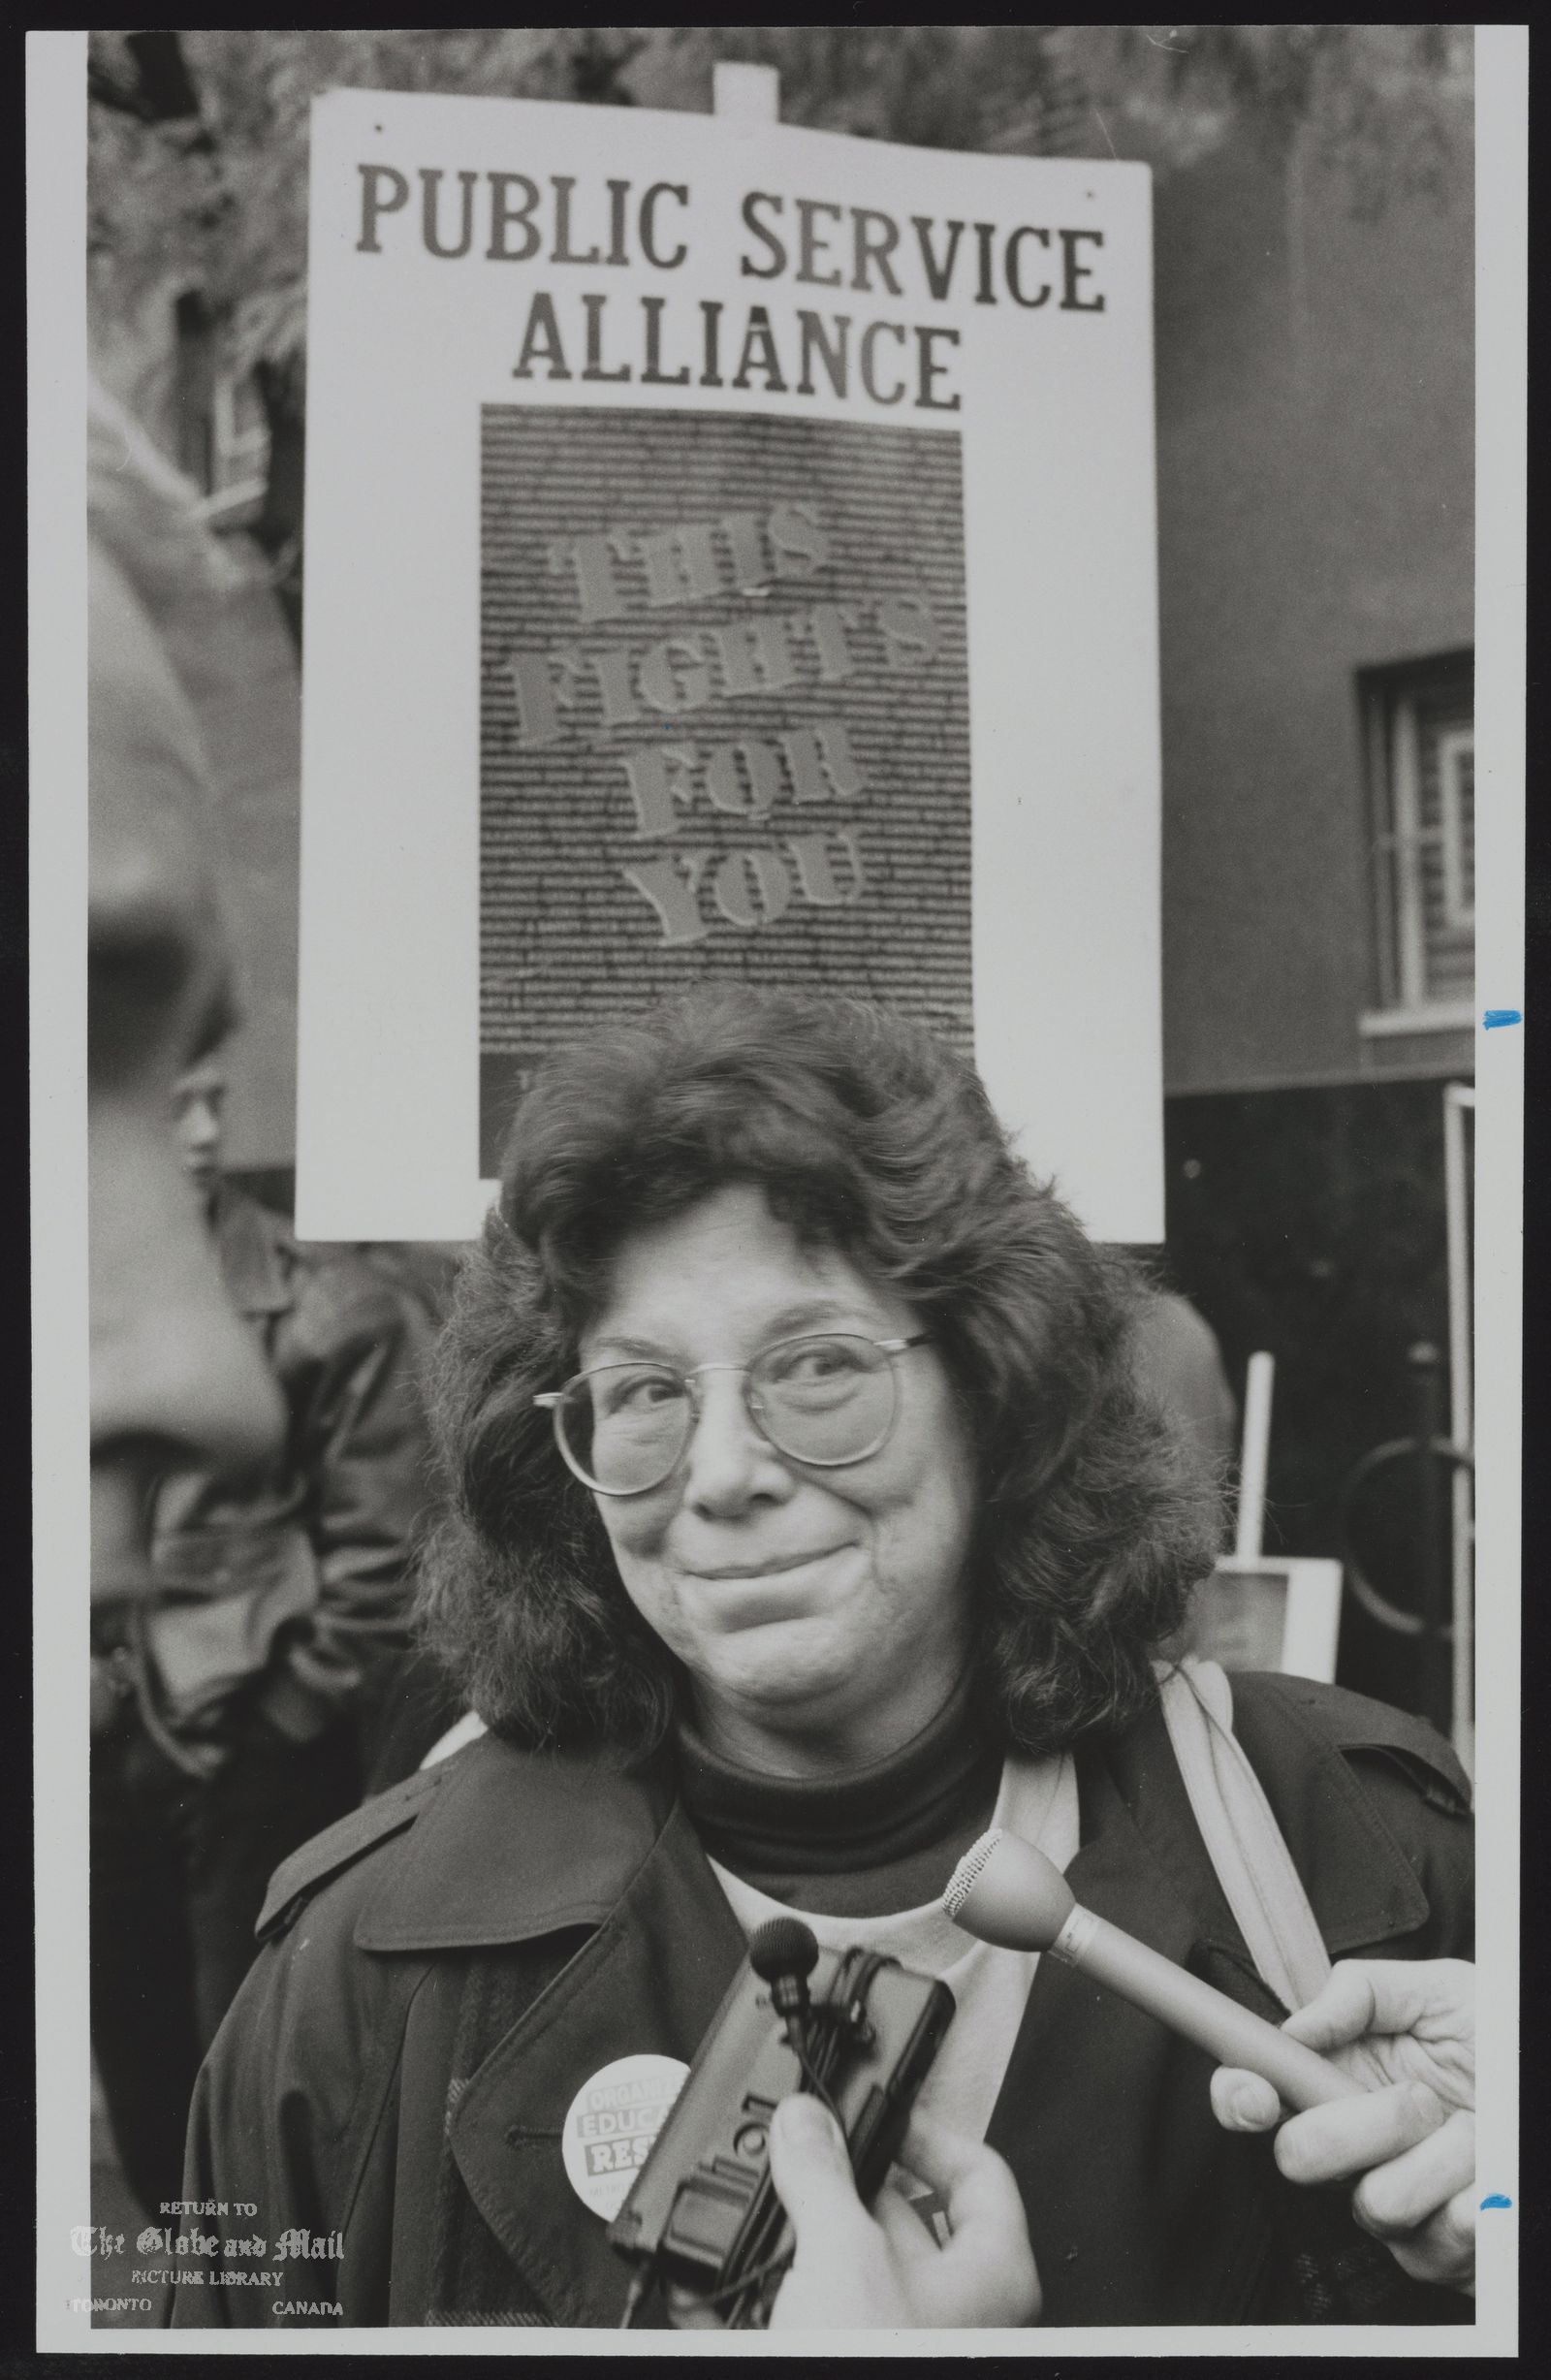 The notes transcribed from the back of this photograph are as follows: TORNEY SPEAKS AT A RALLY IN TORONTO, A WARNING FOR THE DAYS OF ACTION PROTEST.